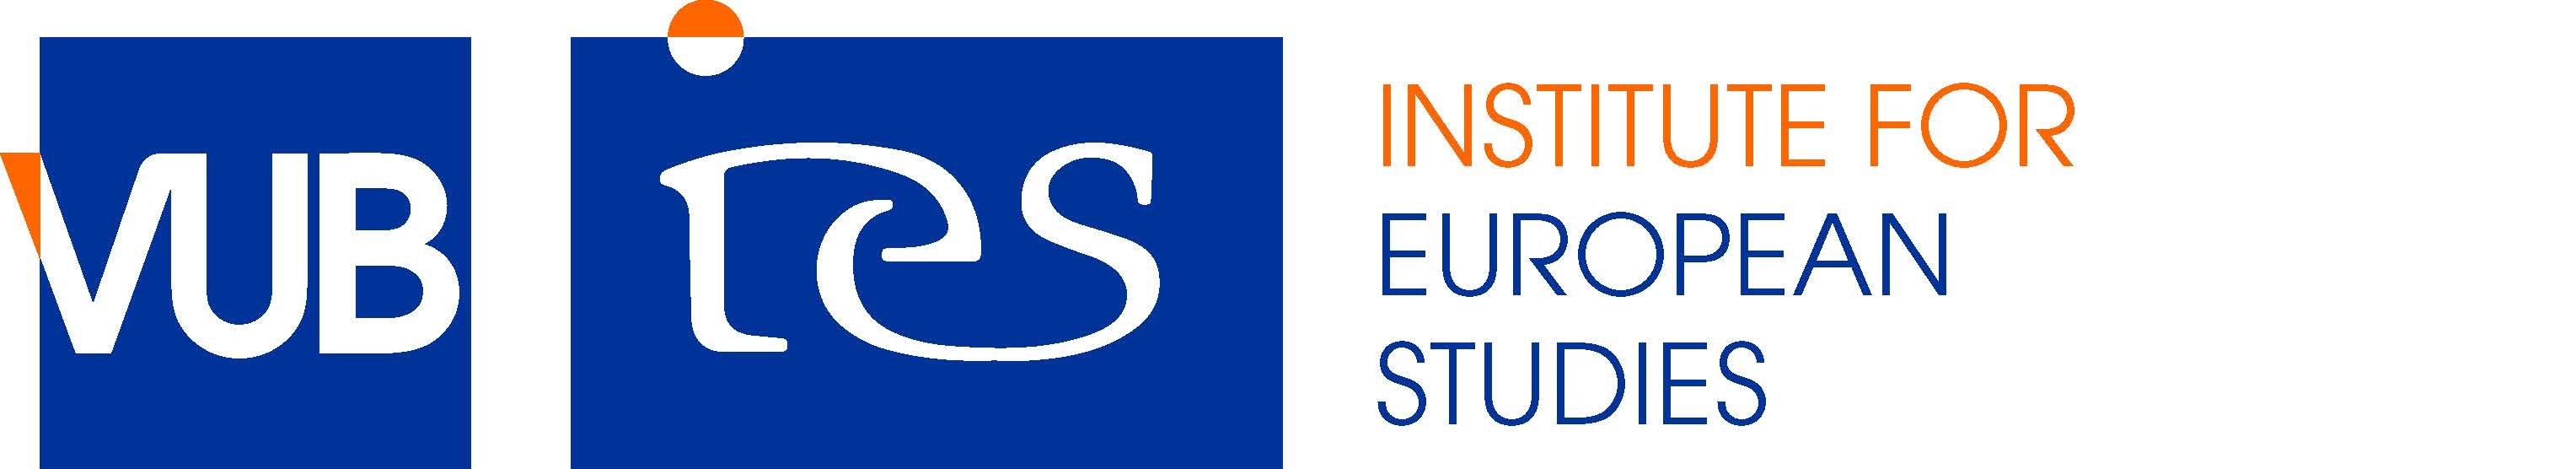 Vrije Universiteit Brussel (VUB) - Institute for European Studies (IES)